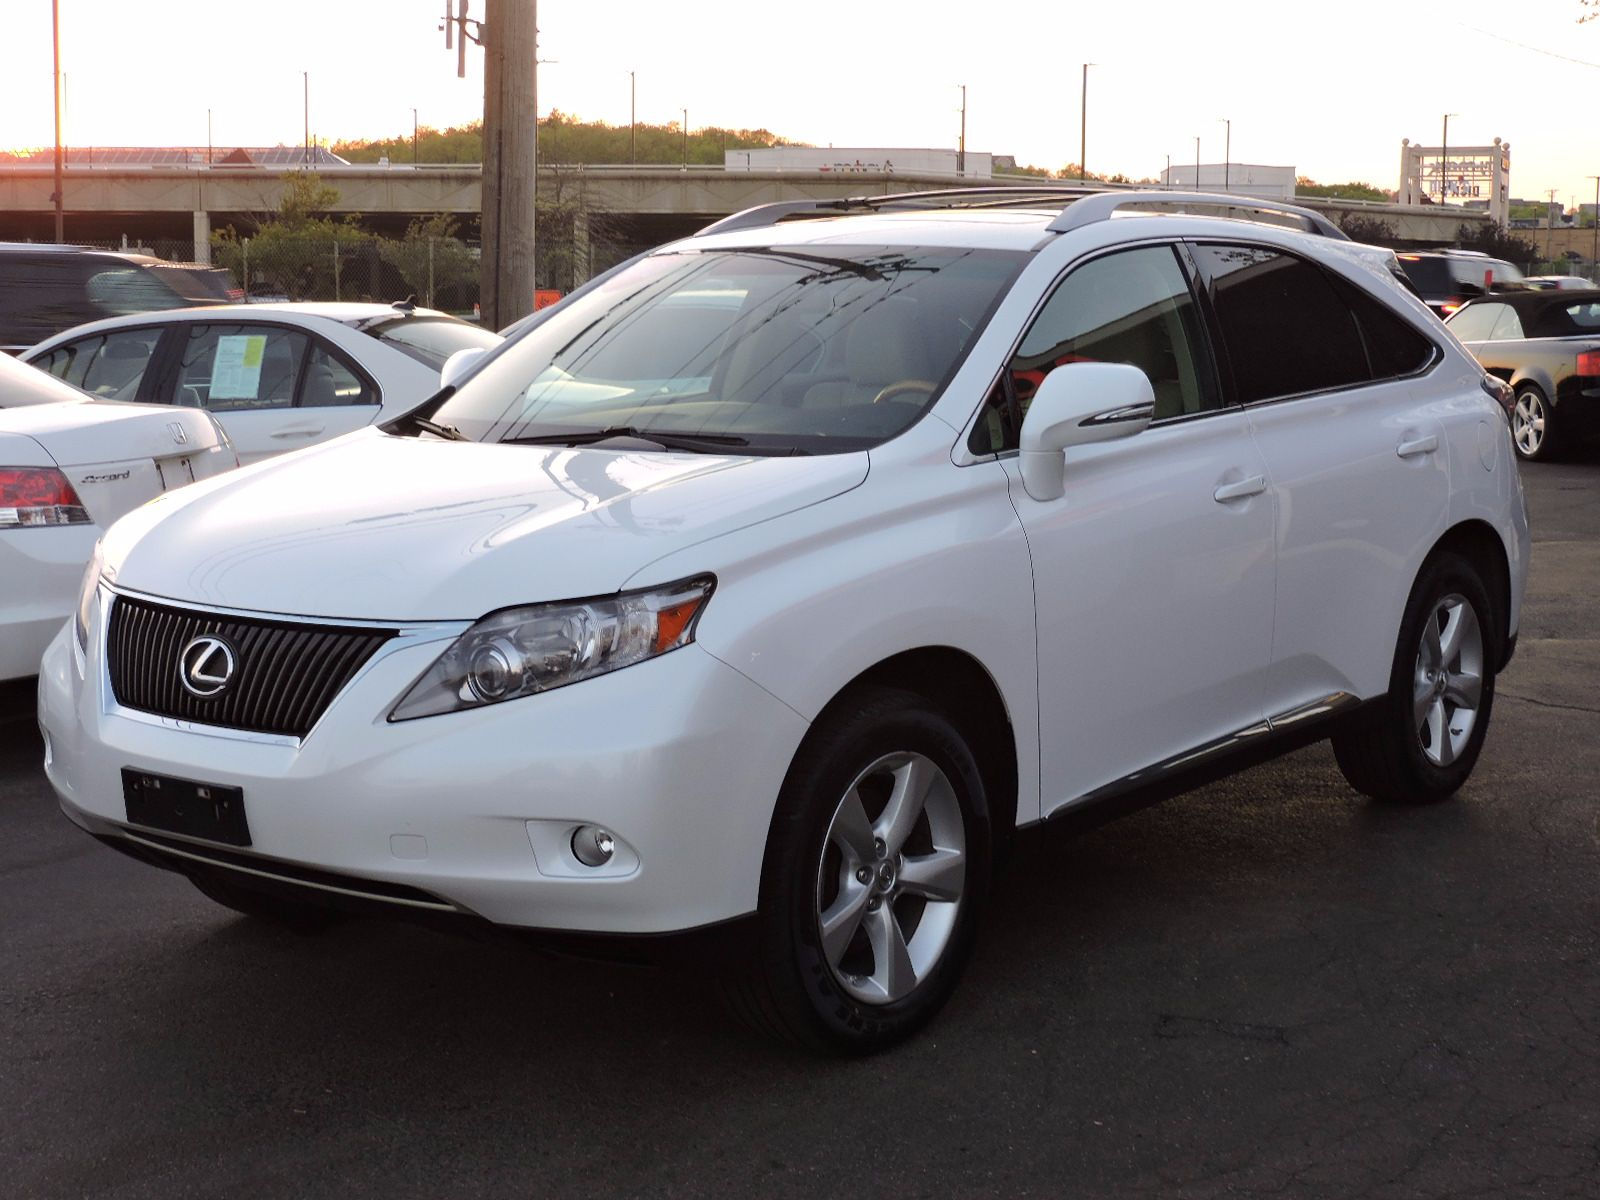 Used 2010 Lexus RX 350 at Saugus Auto Mall